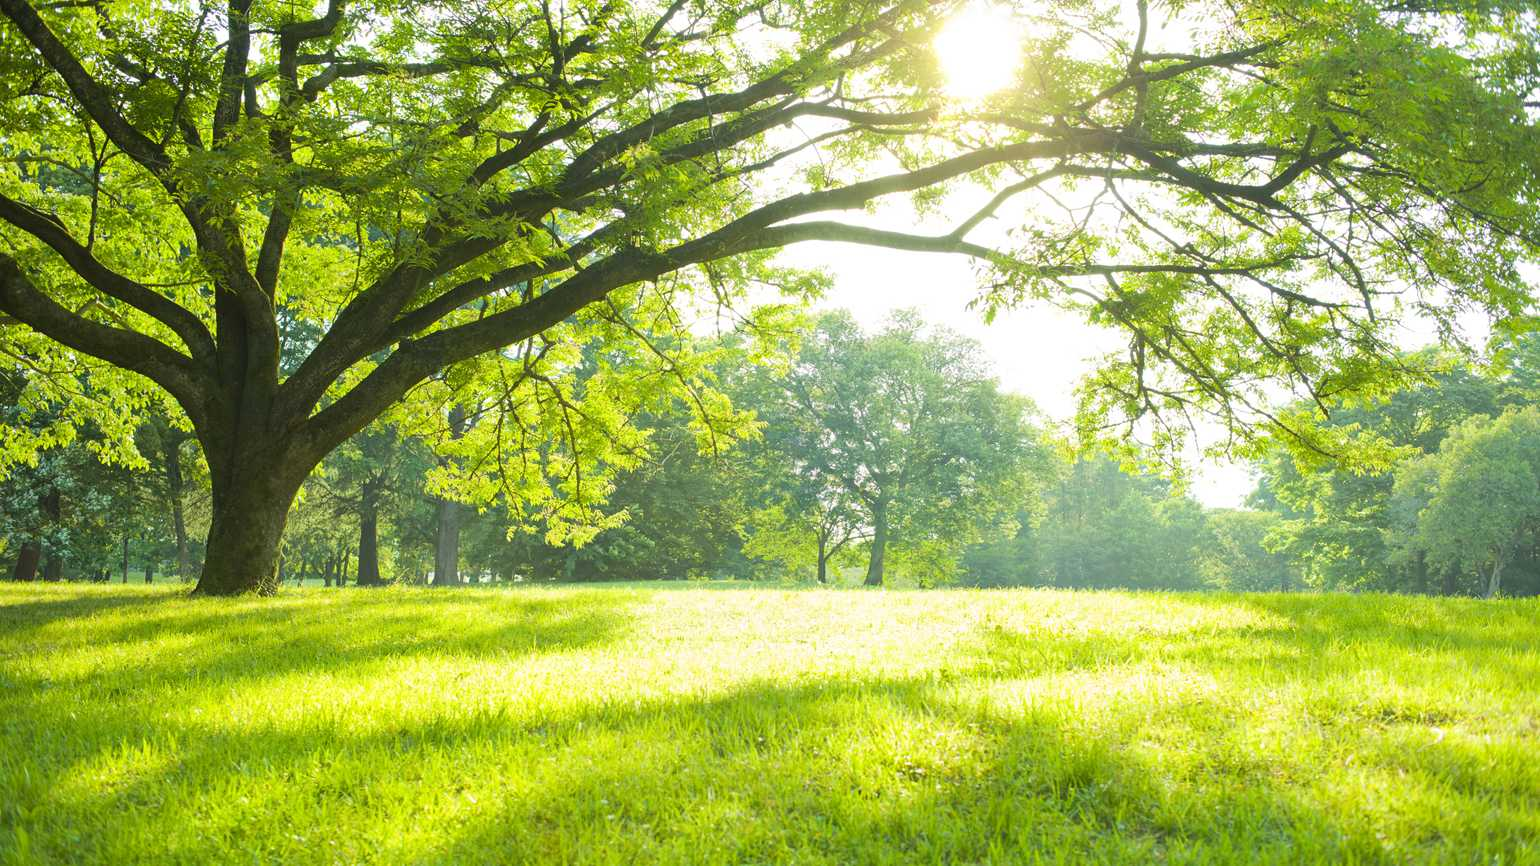 A vividly green field with trees as sunlight shines through the branches.